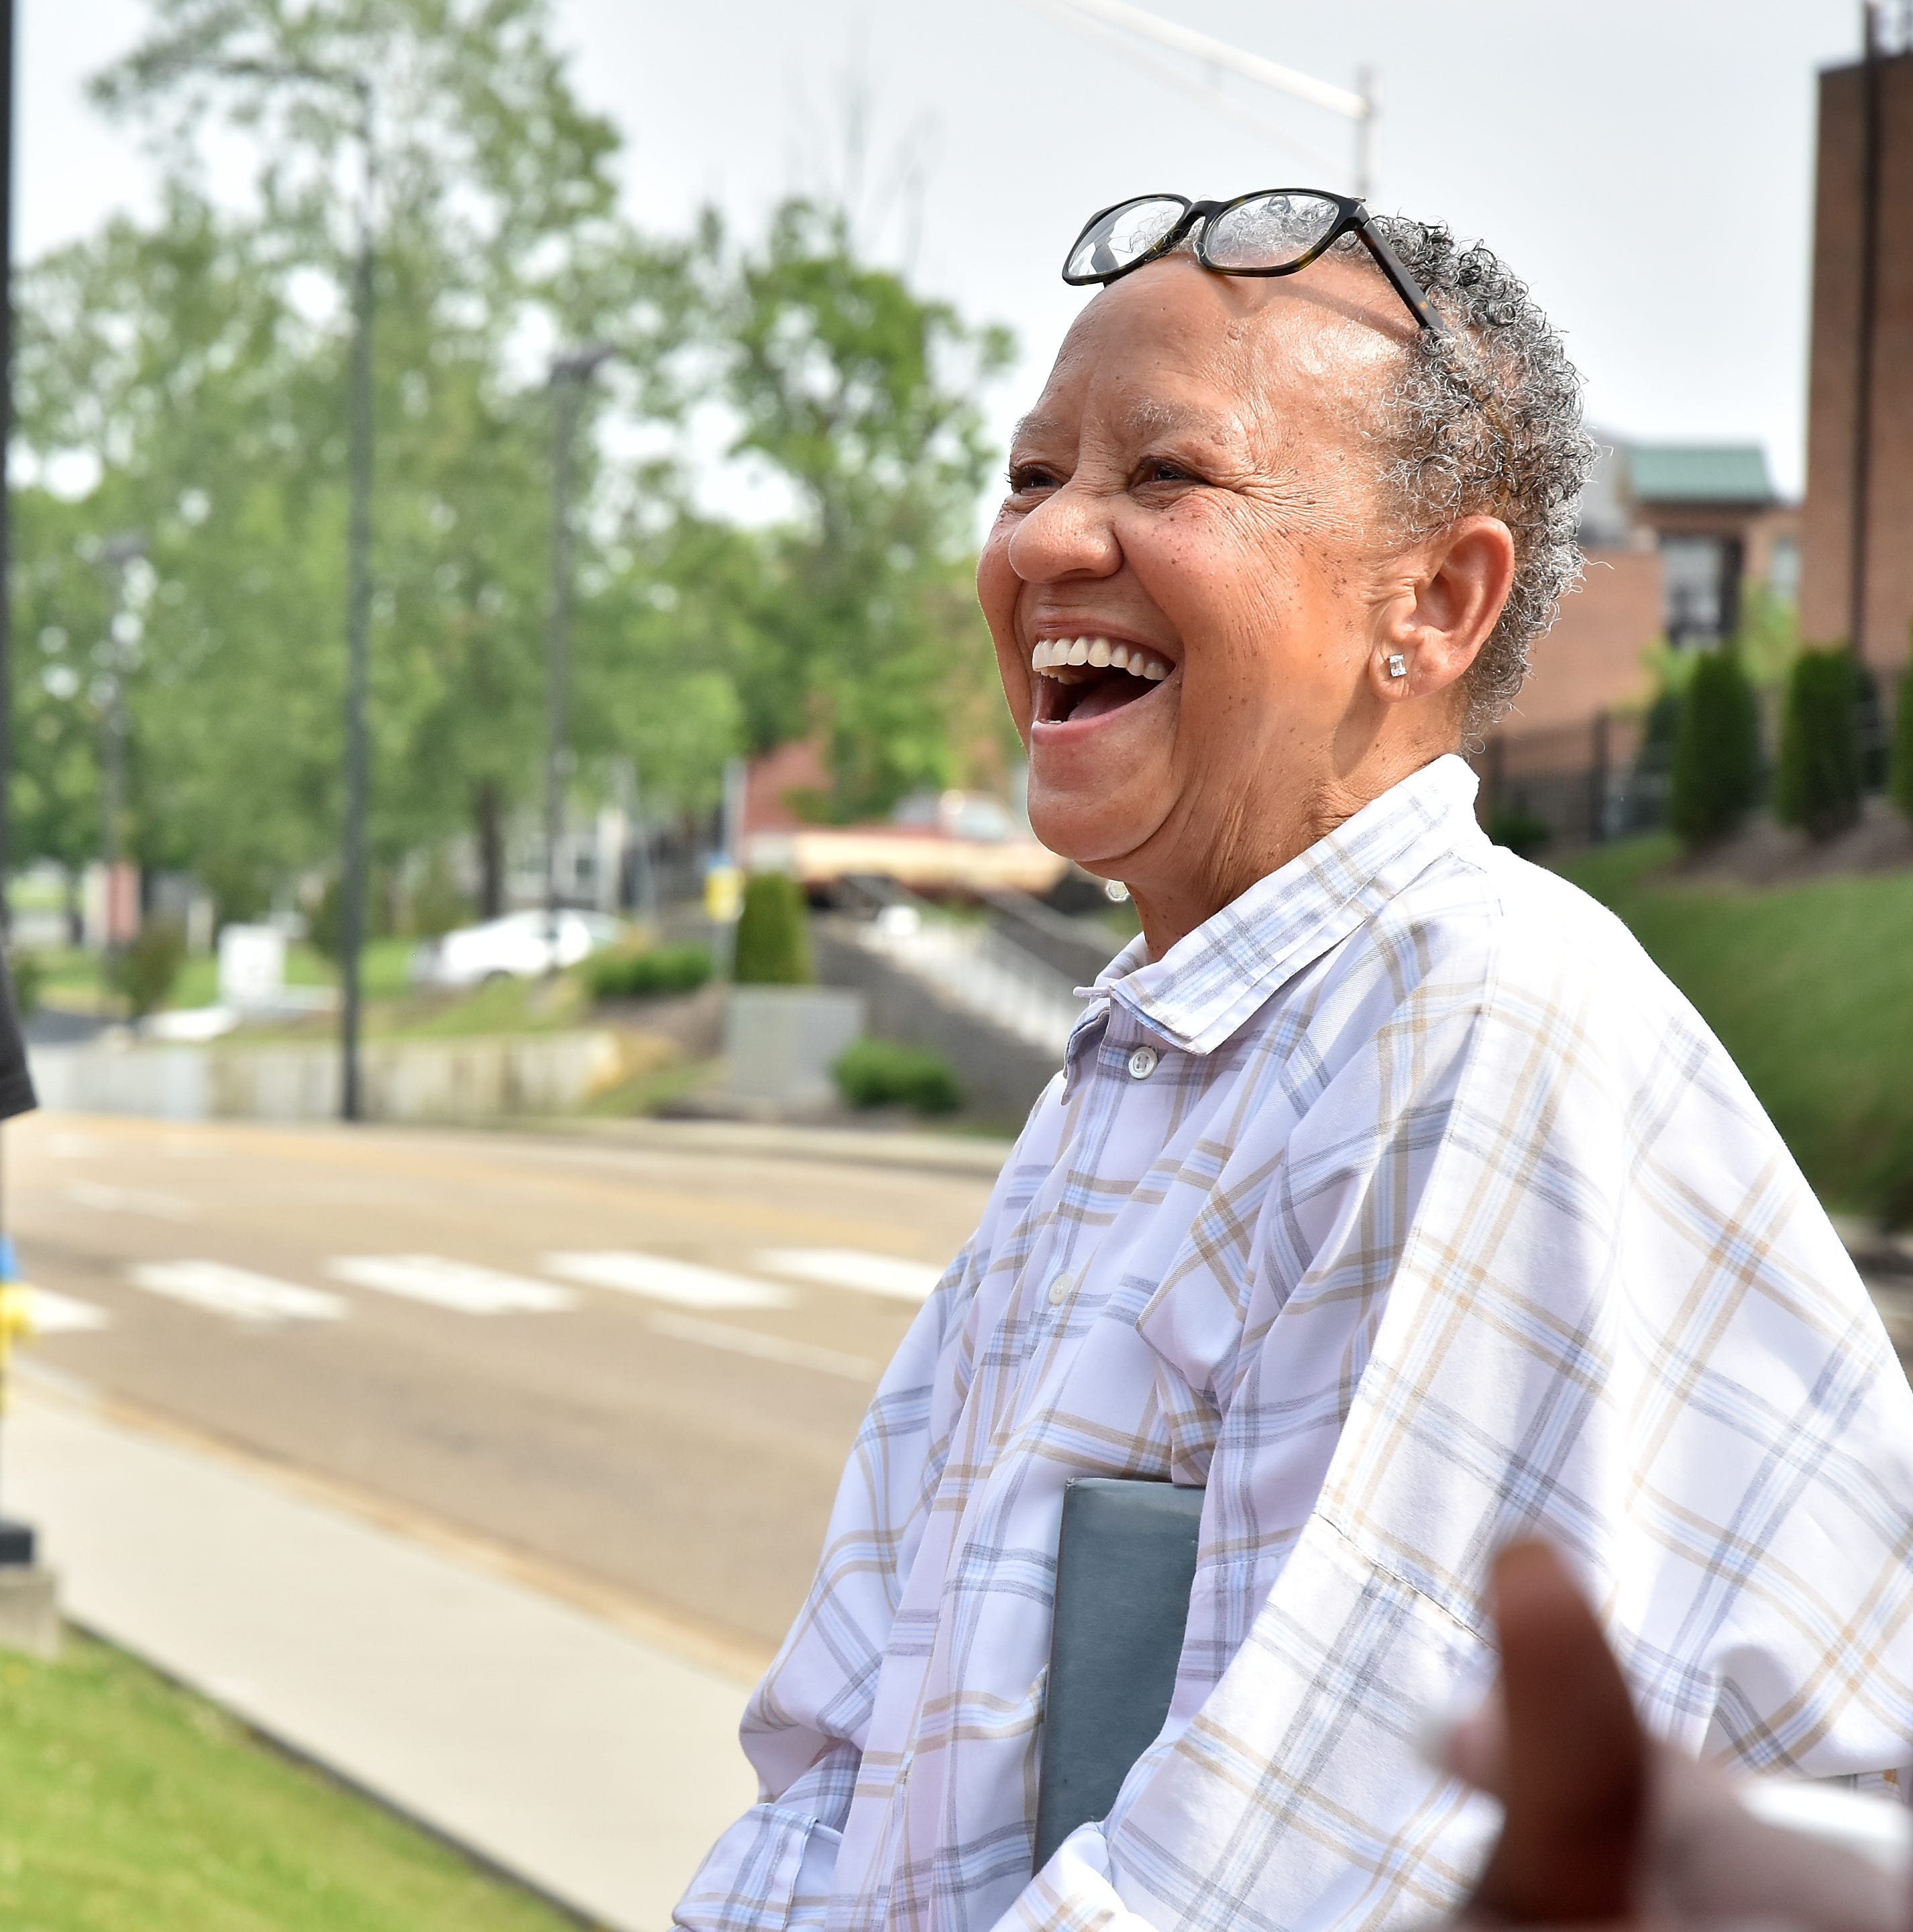 'She made it cool to be your authentic black self': Knoxville celebrates poet Nikki Giovanni